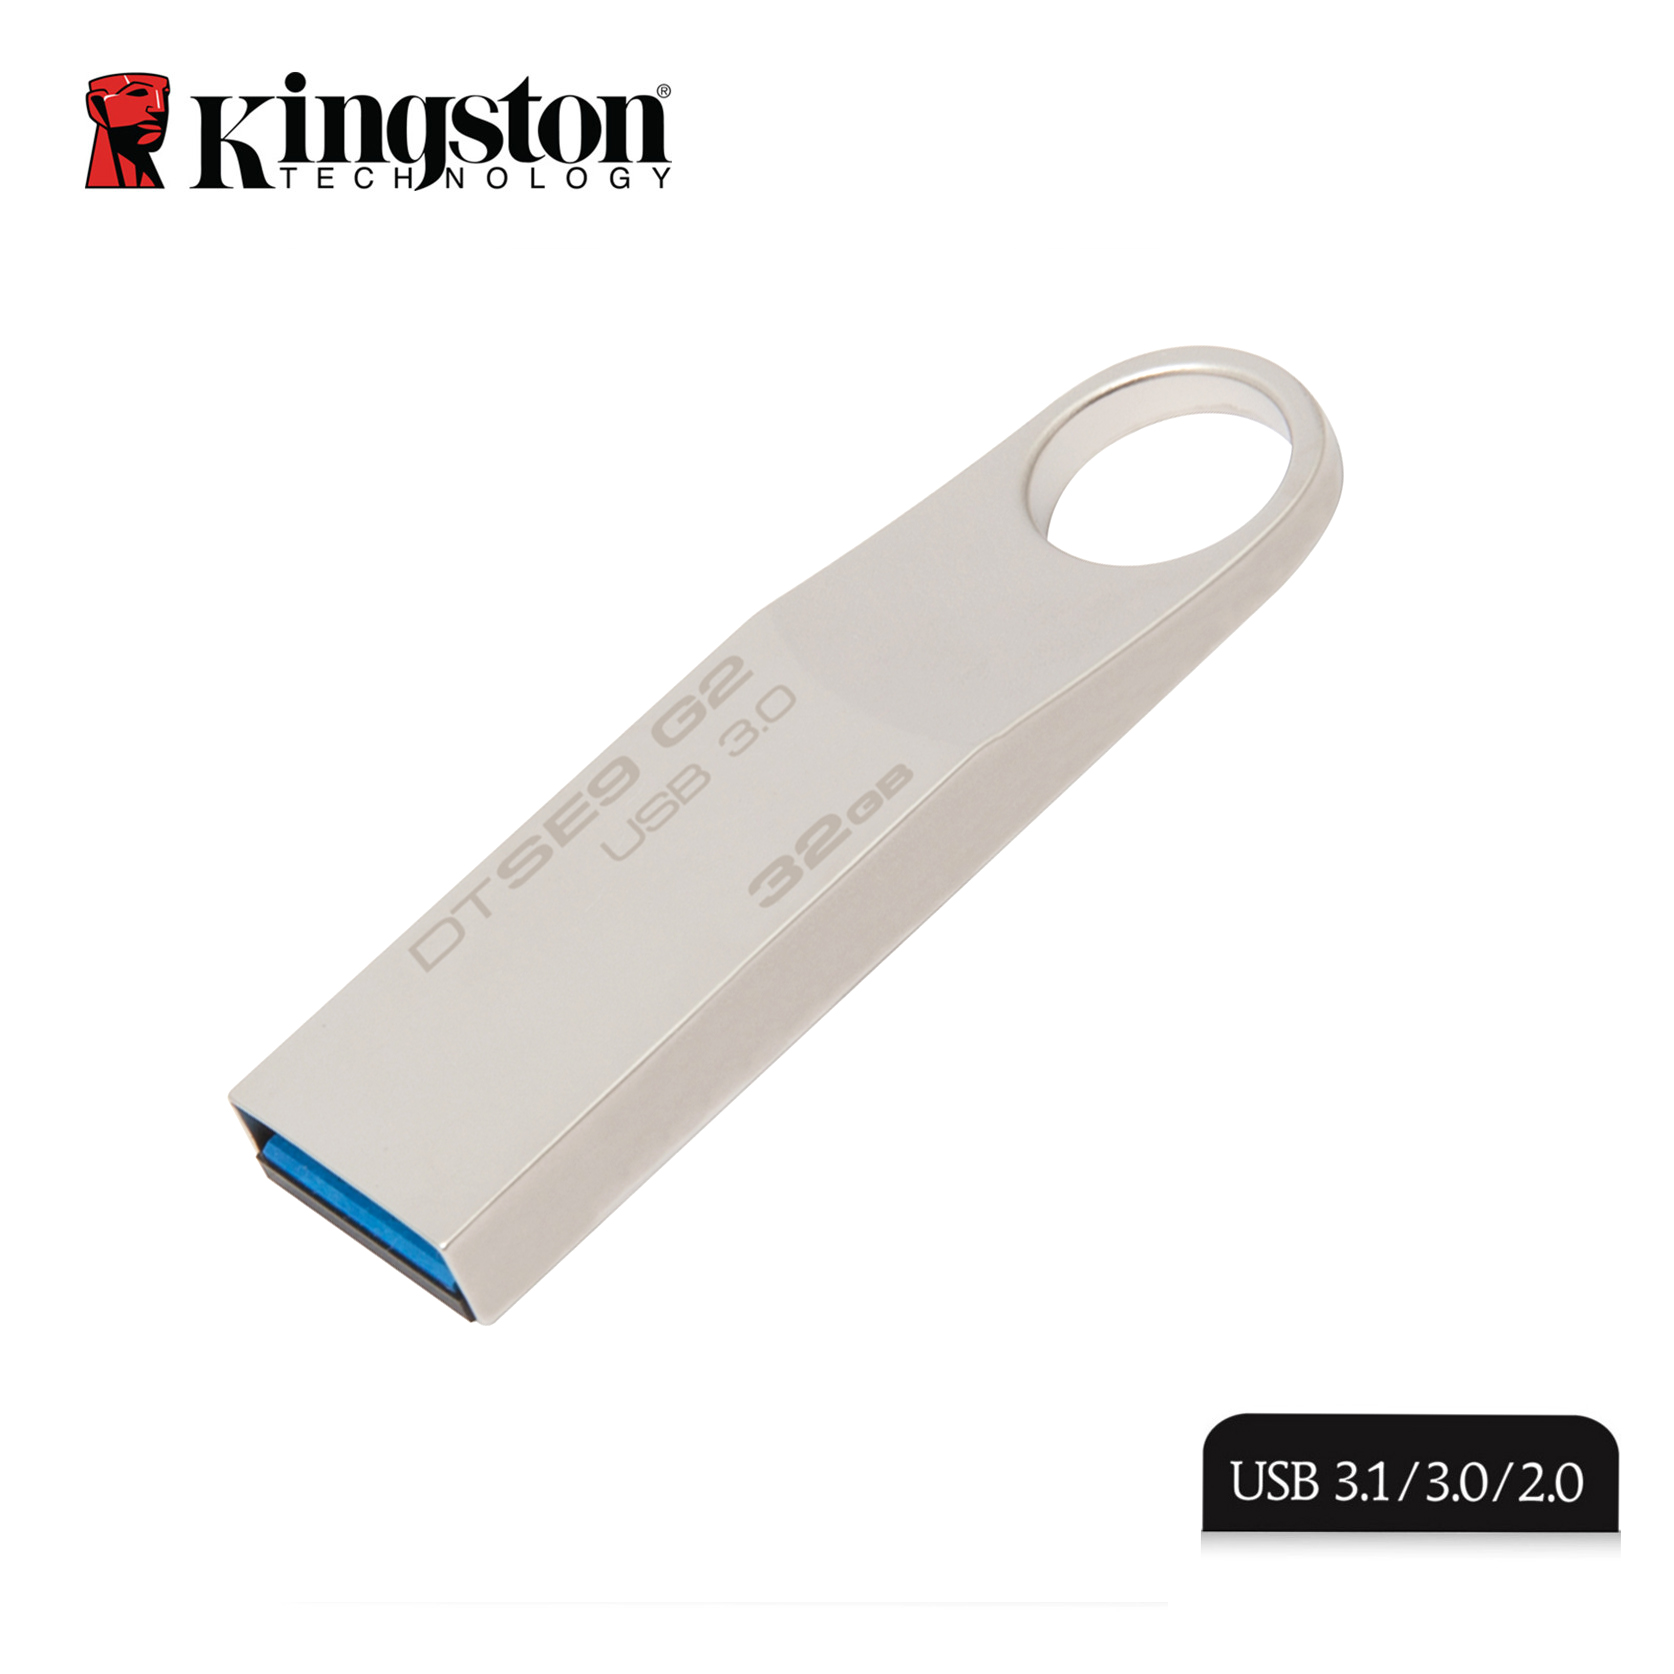 kingston pendrive memoria usb 32gb flash drive otg caneta. Black Bedroom Furniture Sets. Home Design Ideas